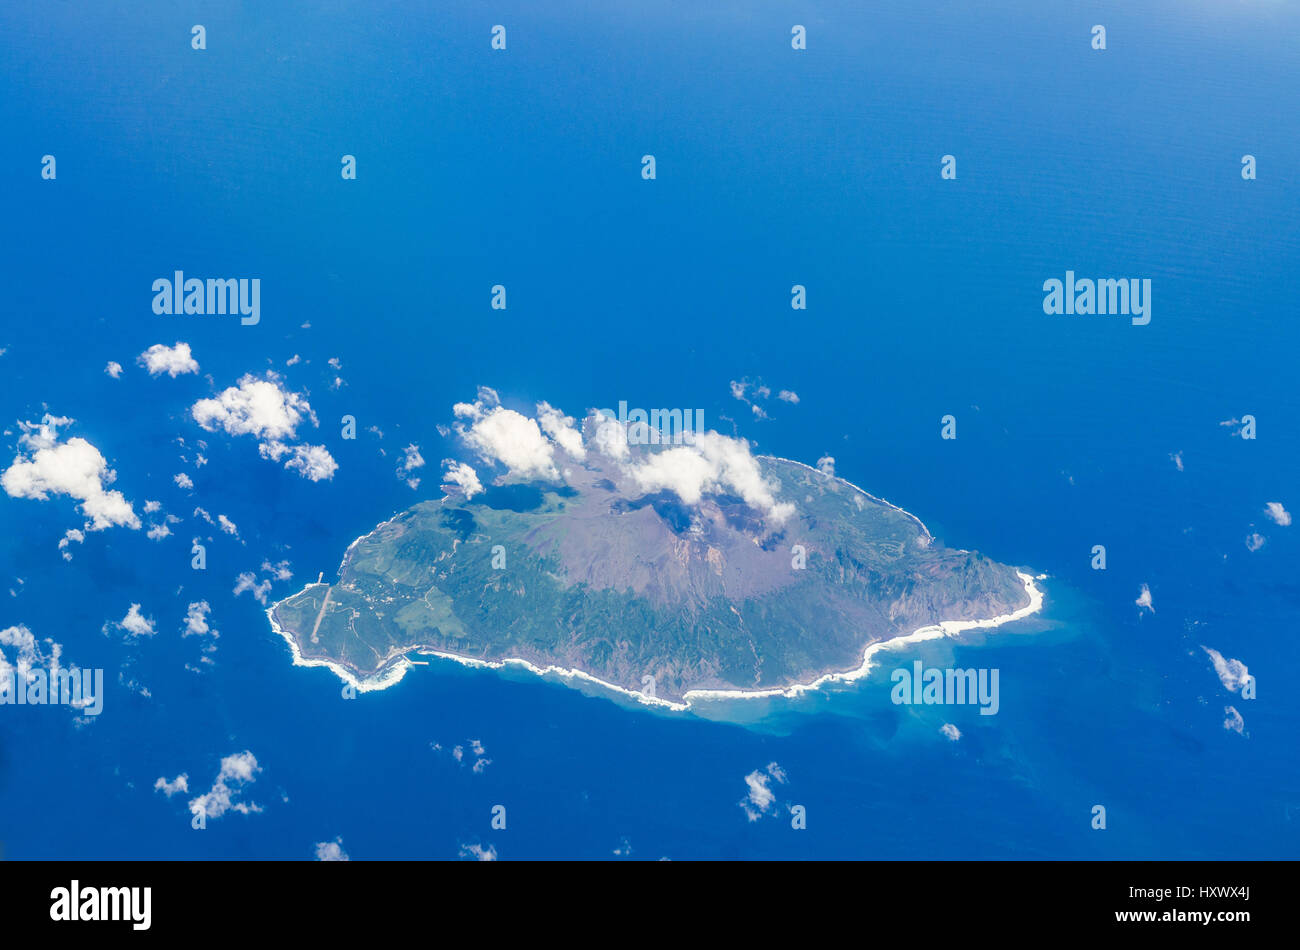 Toshima Stock Photos Toshima Stock Images Alamy